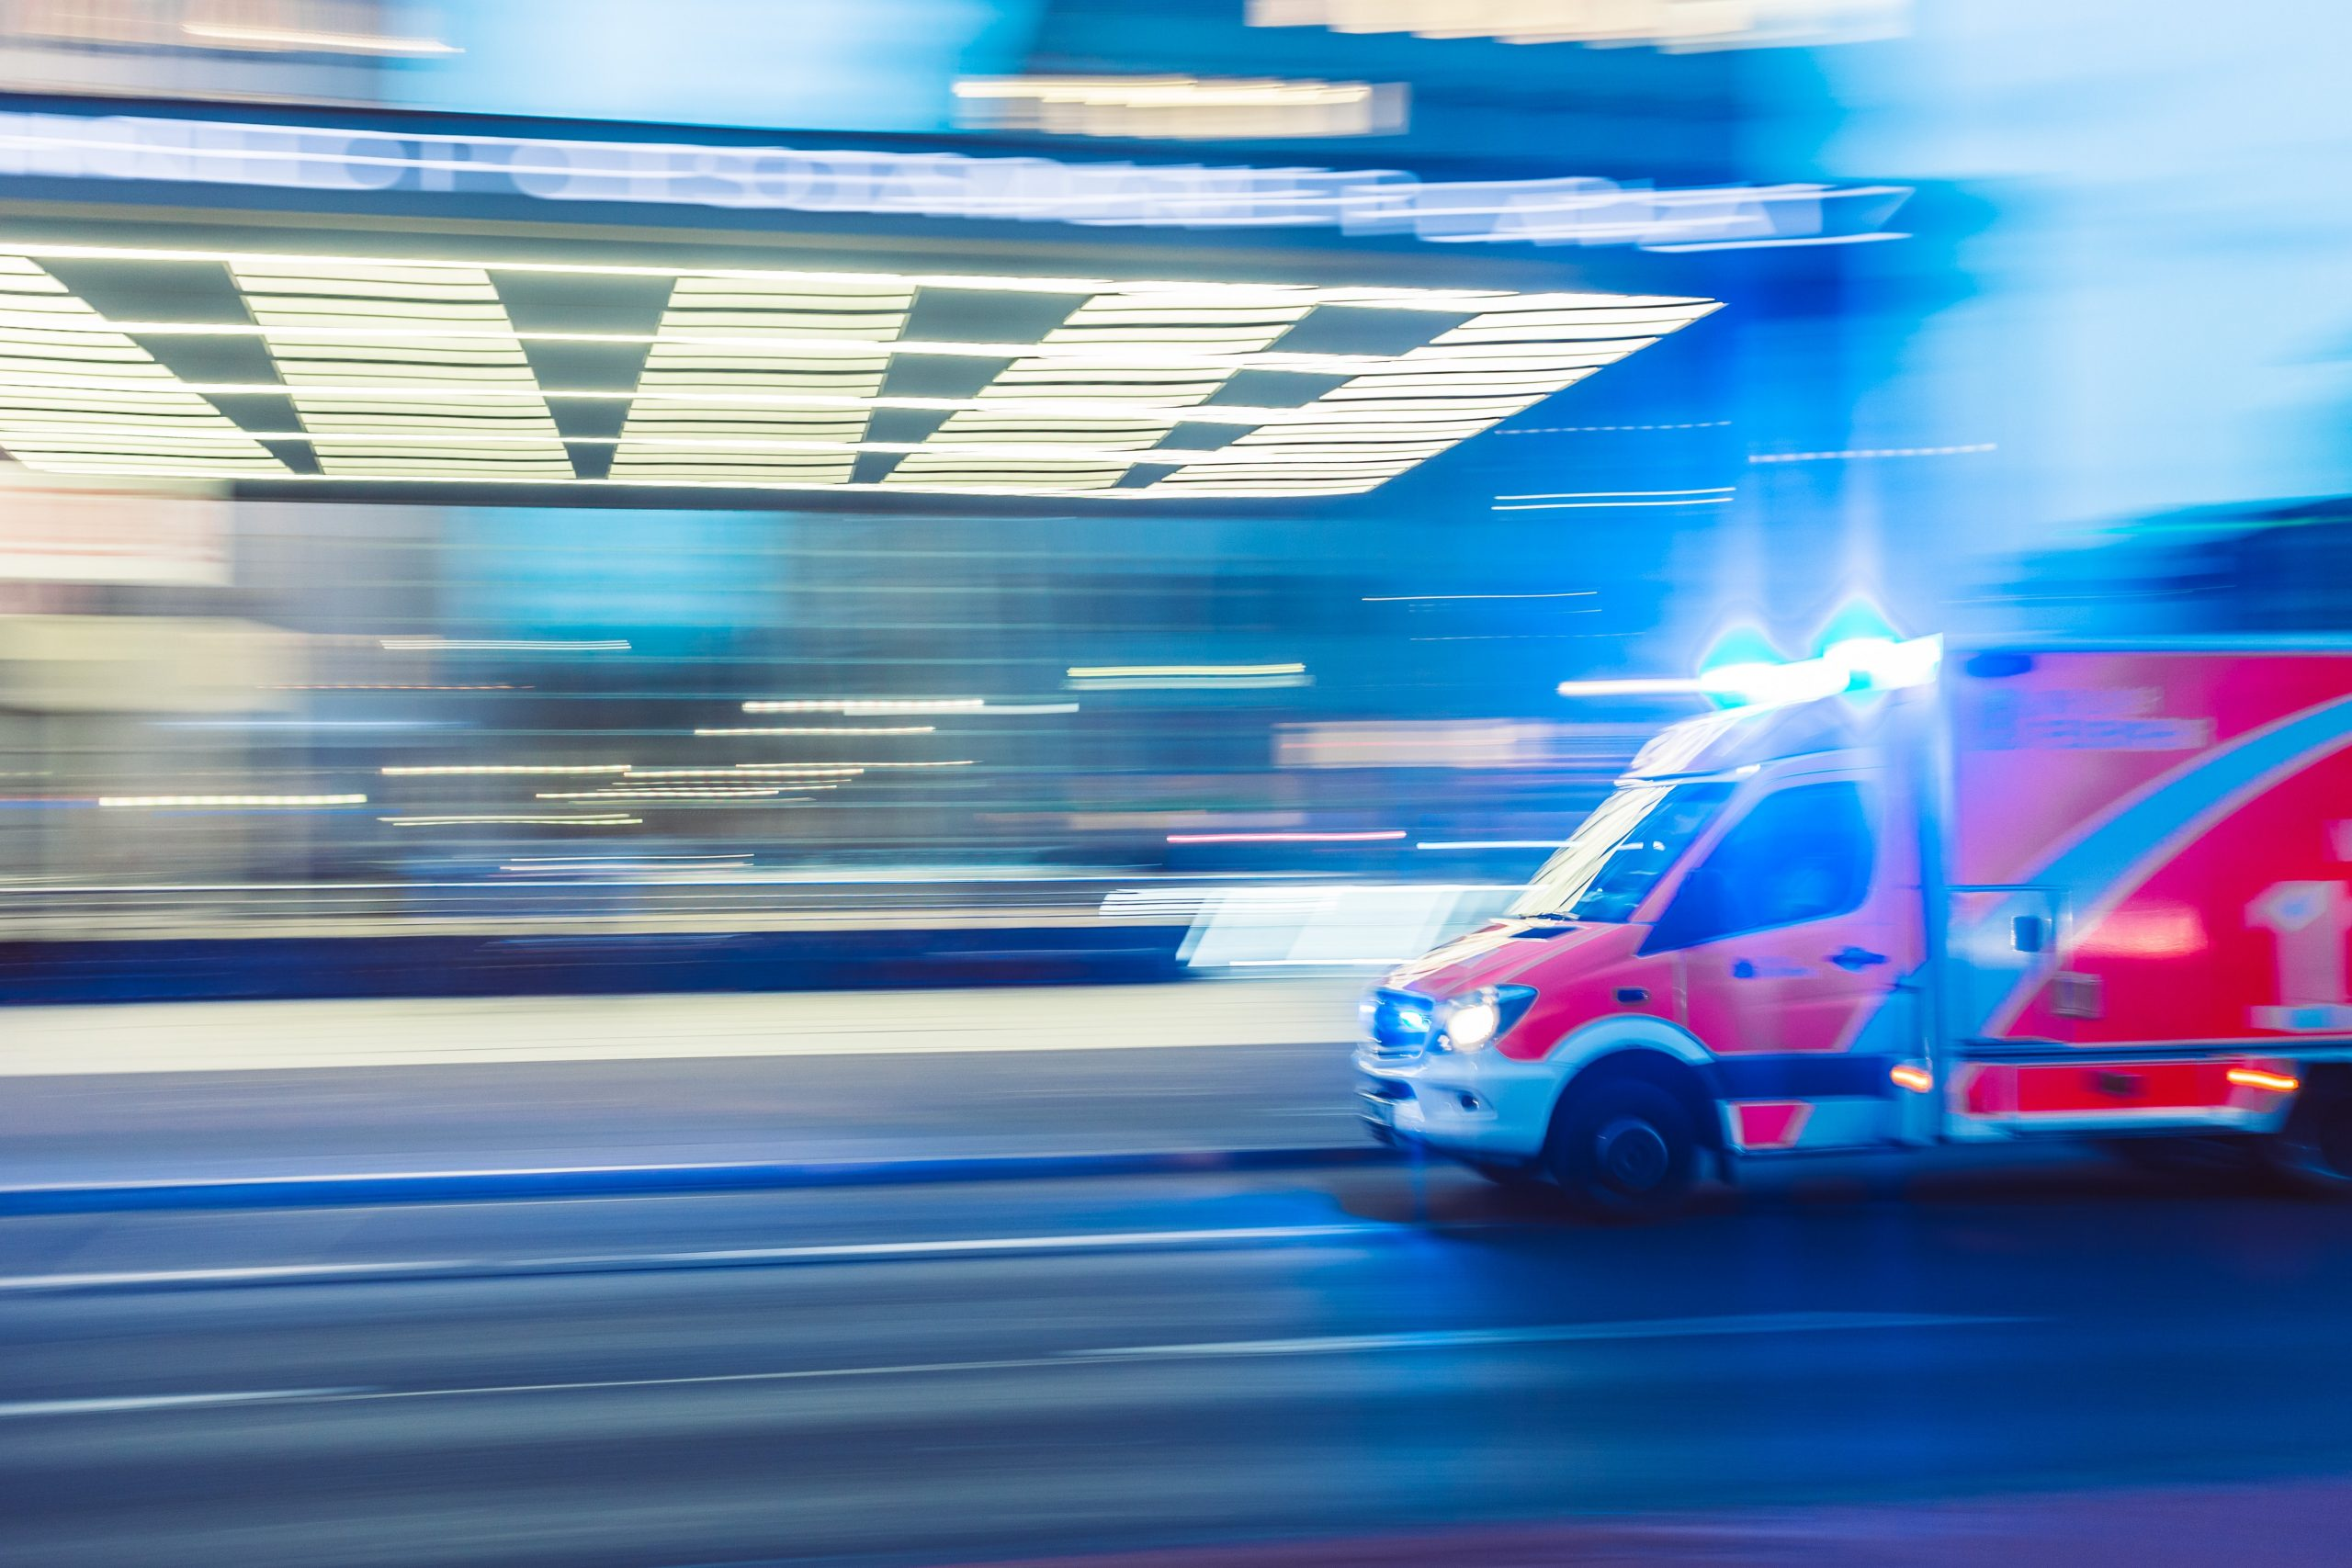 an ambulance races down the road